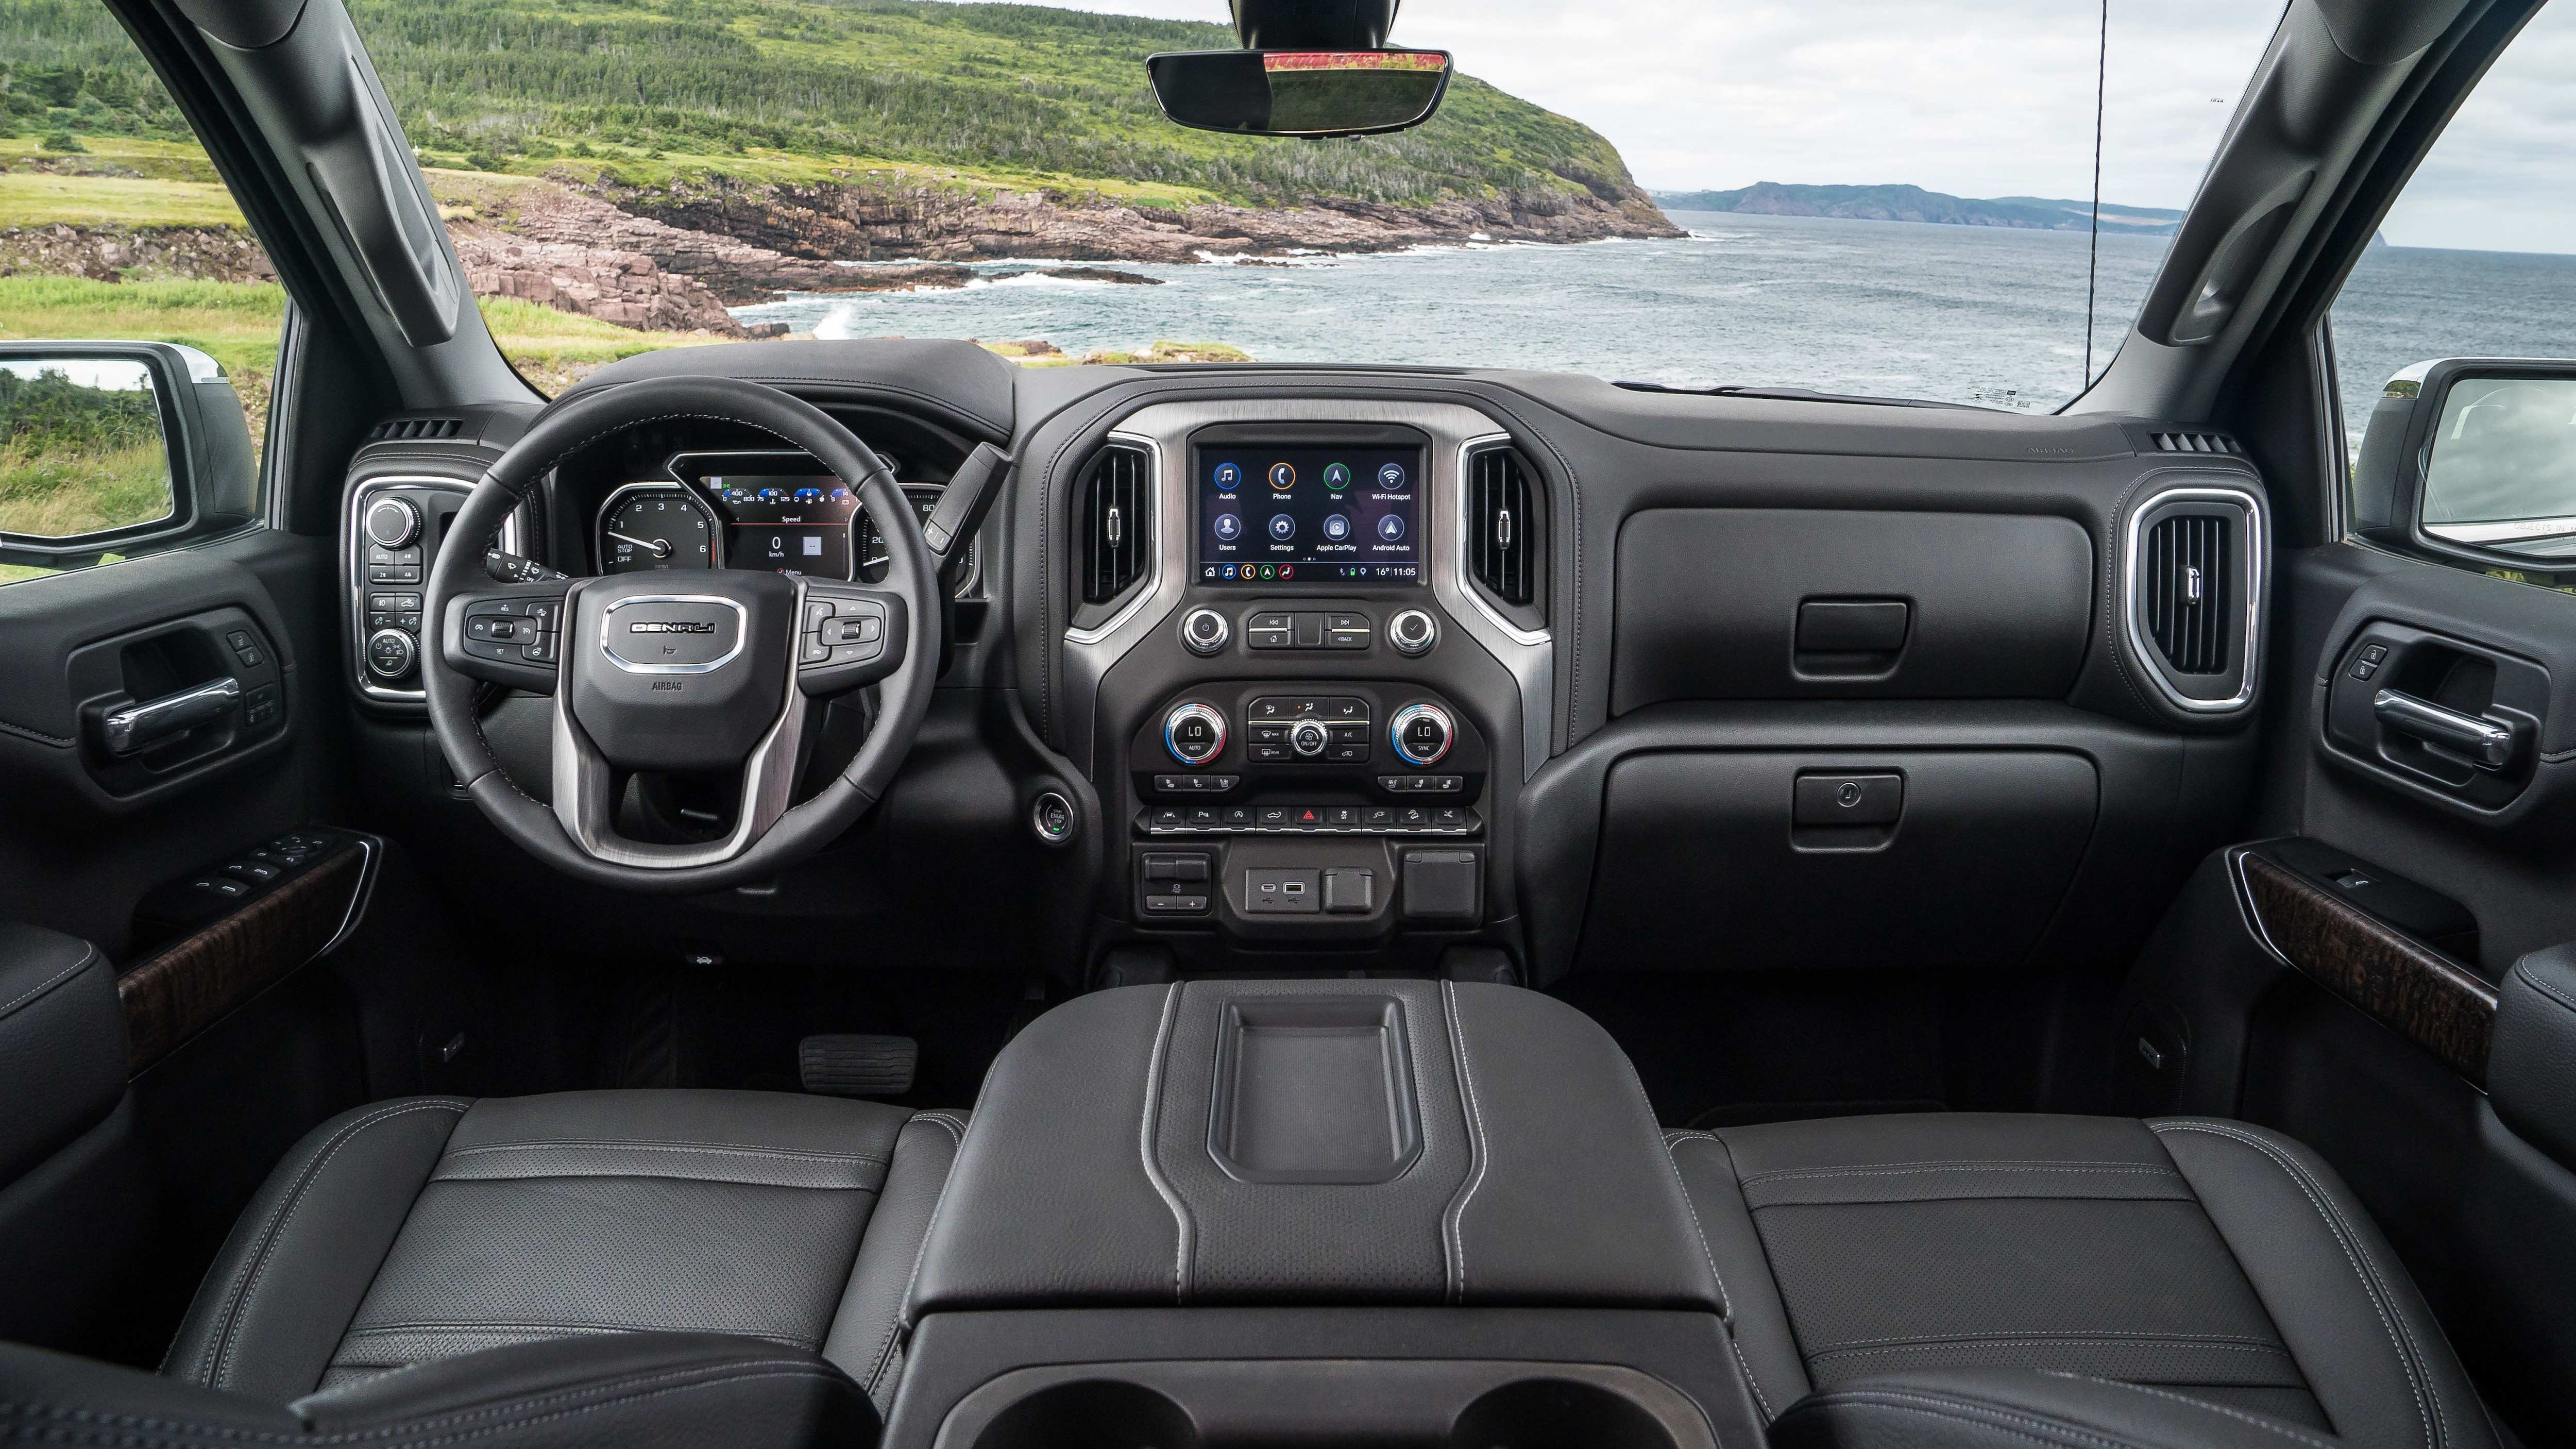 80 Concept of 2019 Gmc 1500 Interior Release Date with 2019 Gmc 1500 Interior